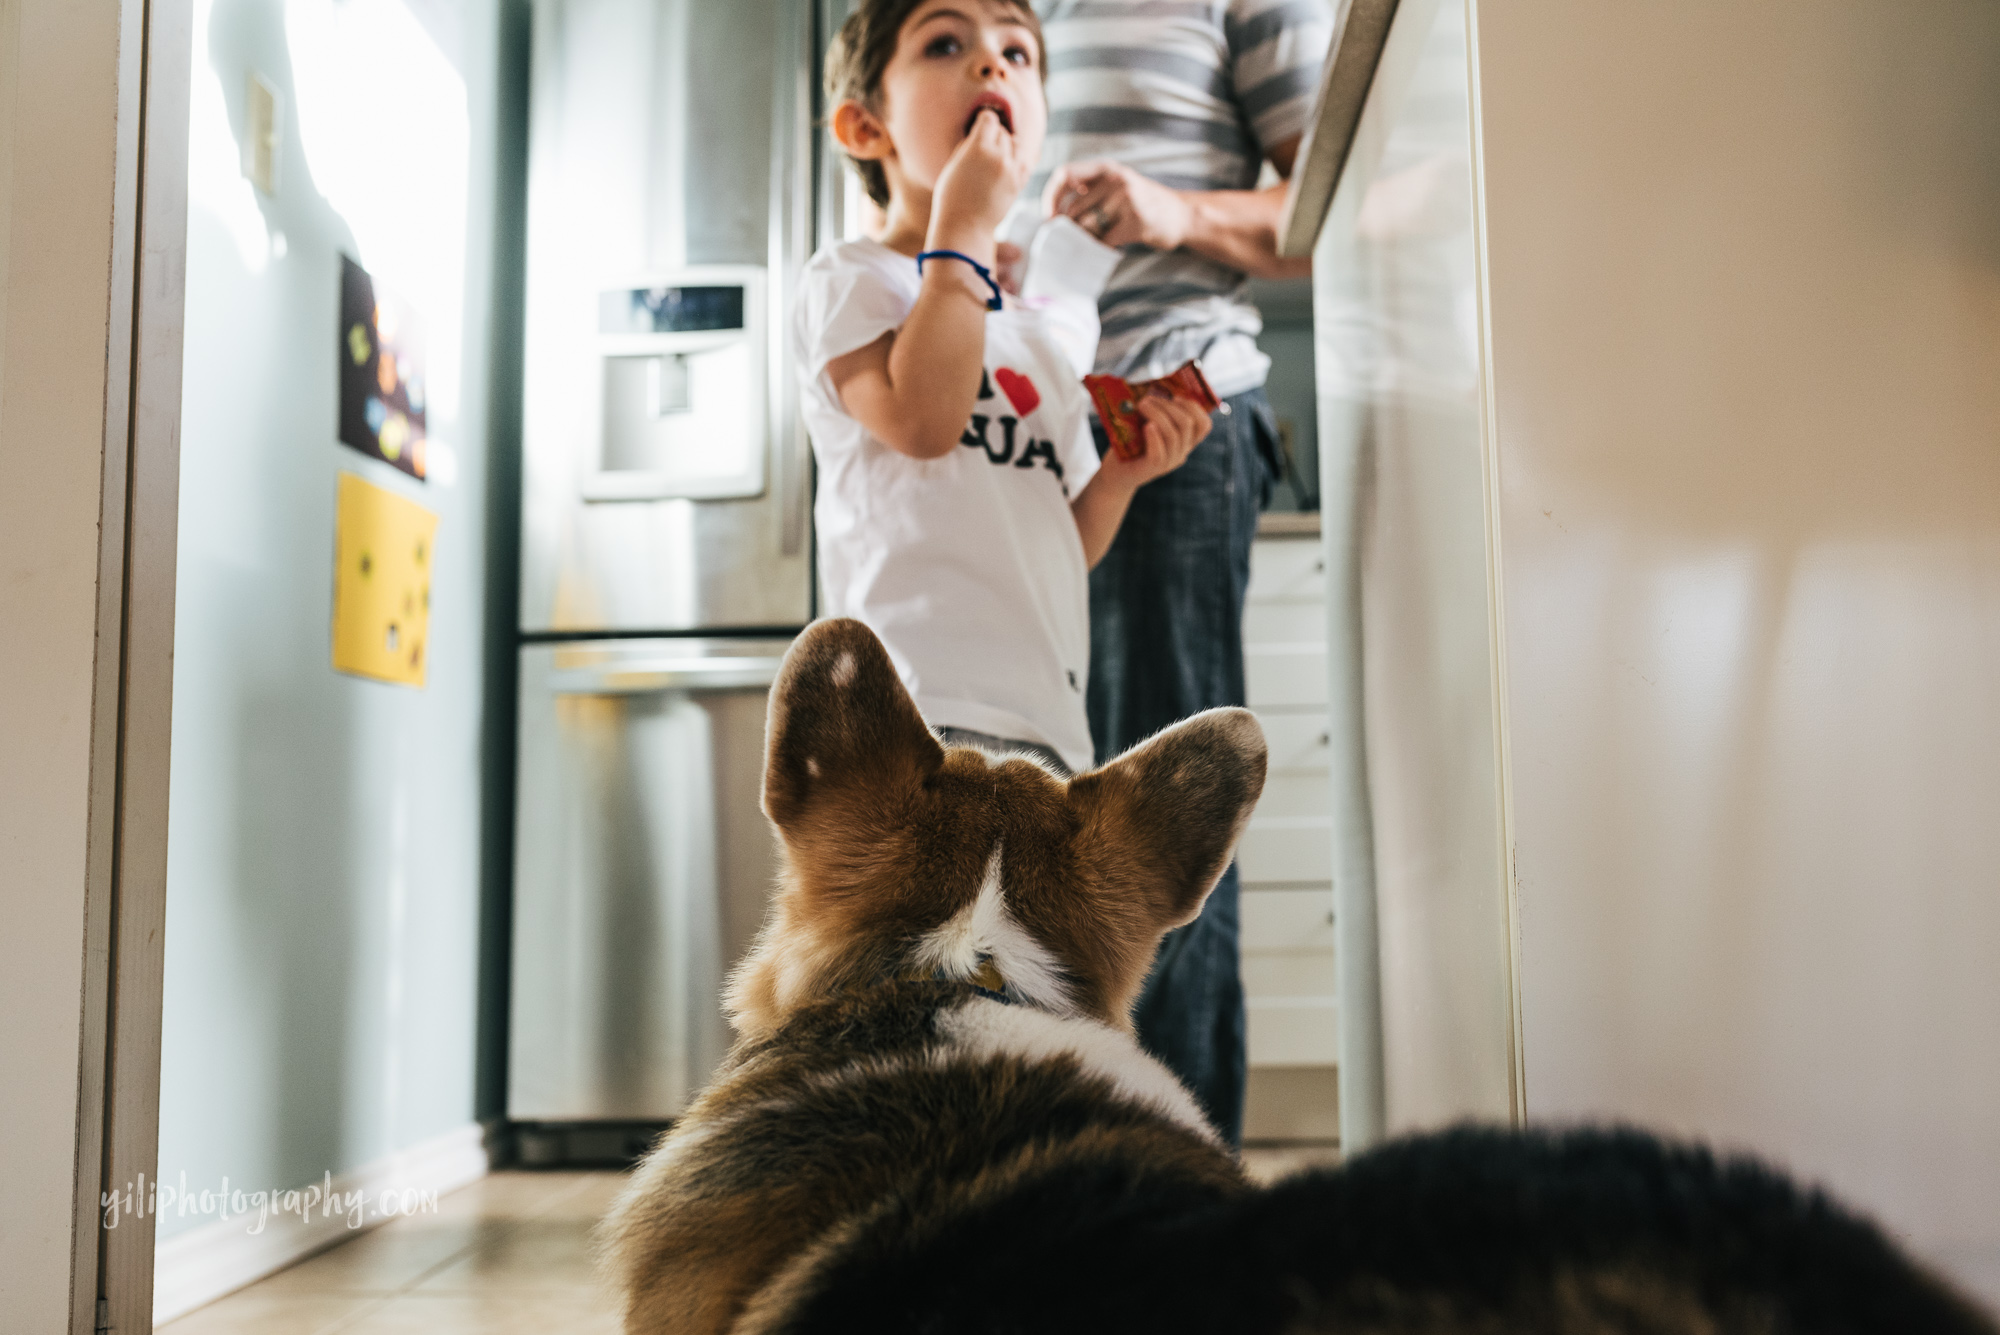 seattle toddler eating a snack while family dog watches